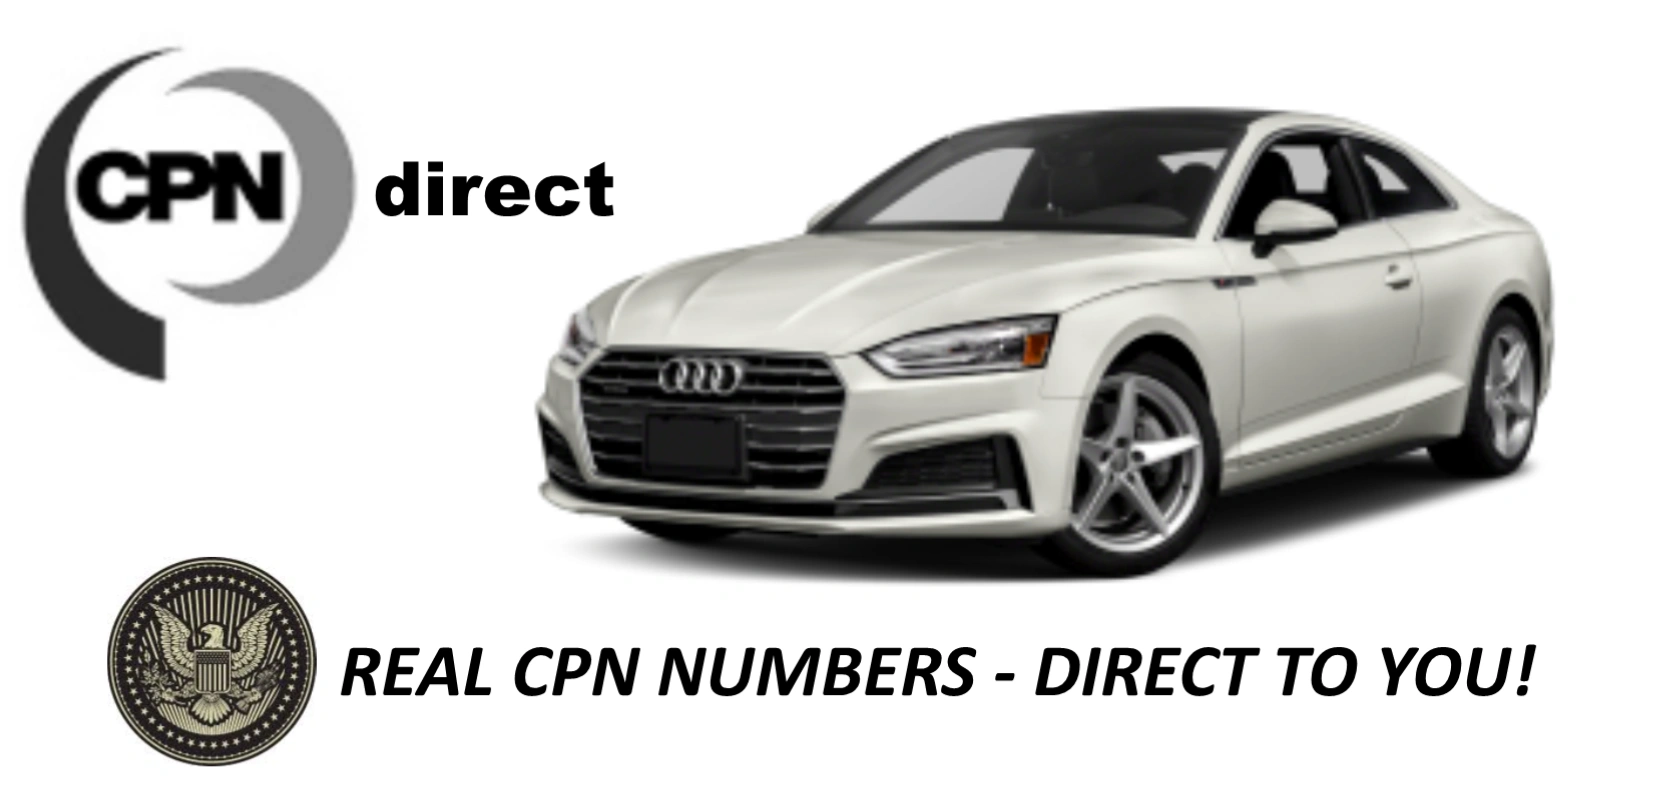 CPN DIRECT